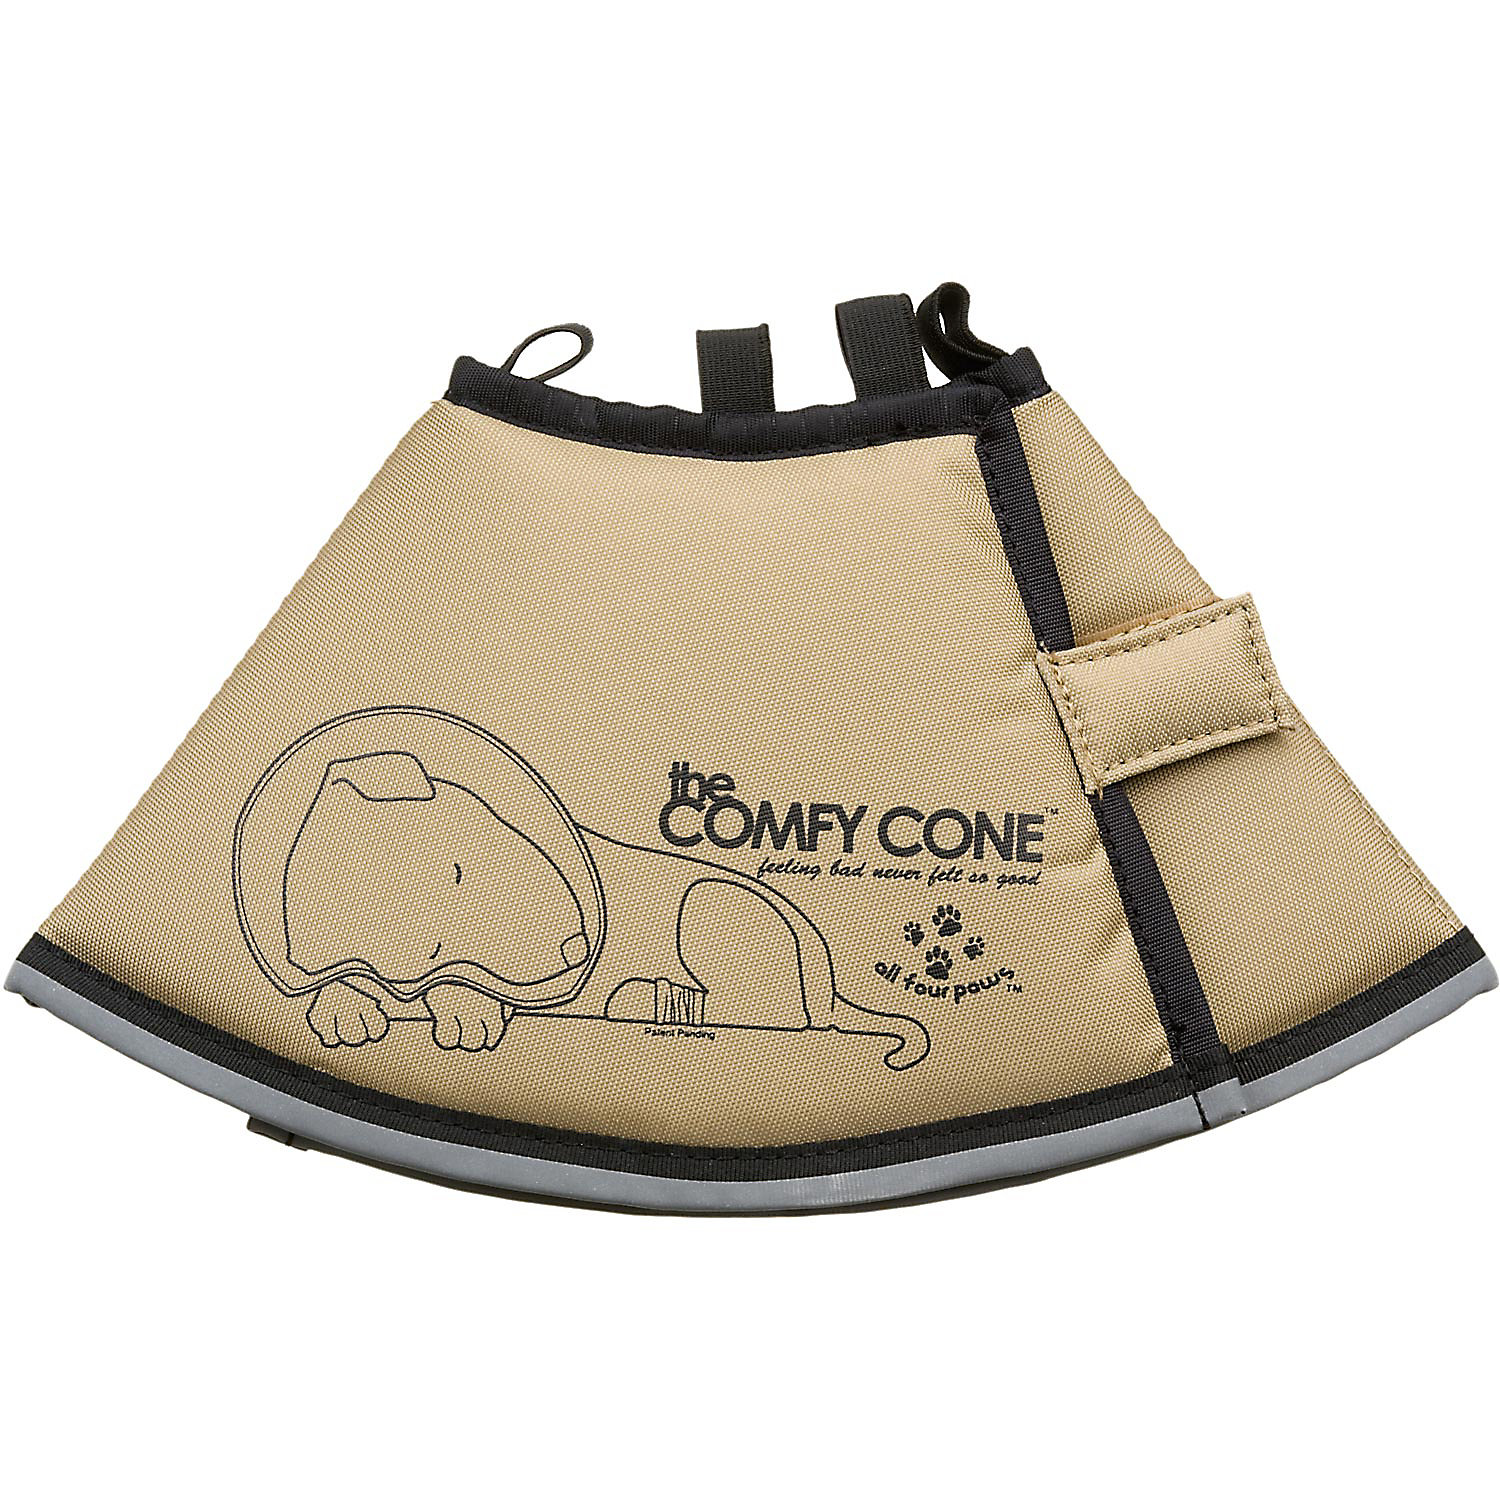 All Four Paws Tan Comfy Cone Small Small 12.5 Cm